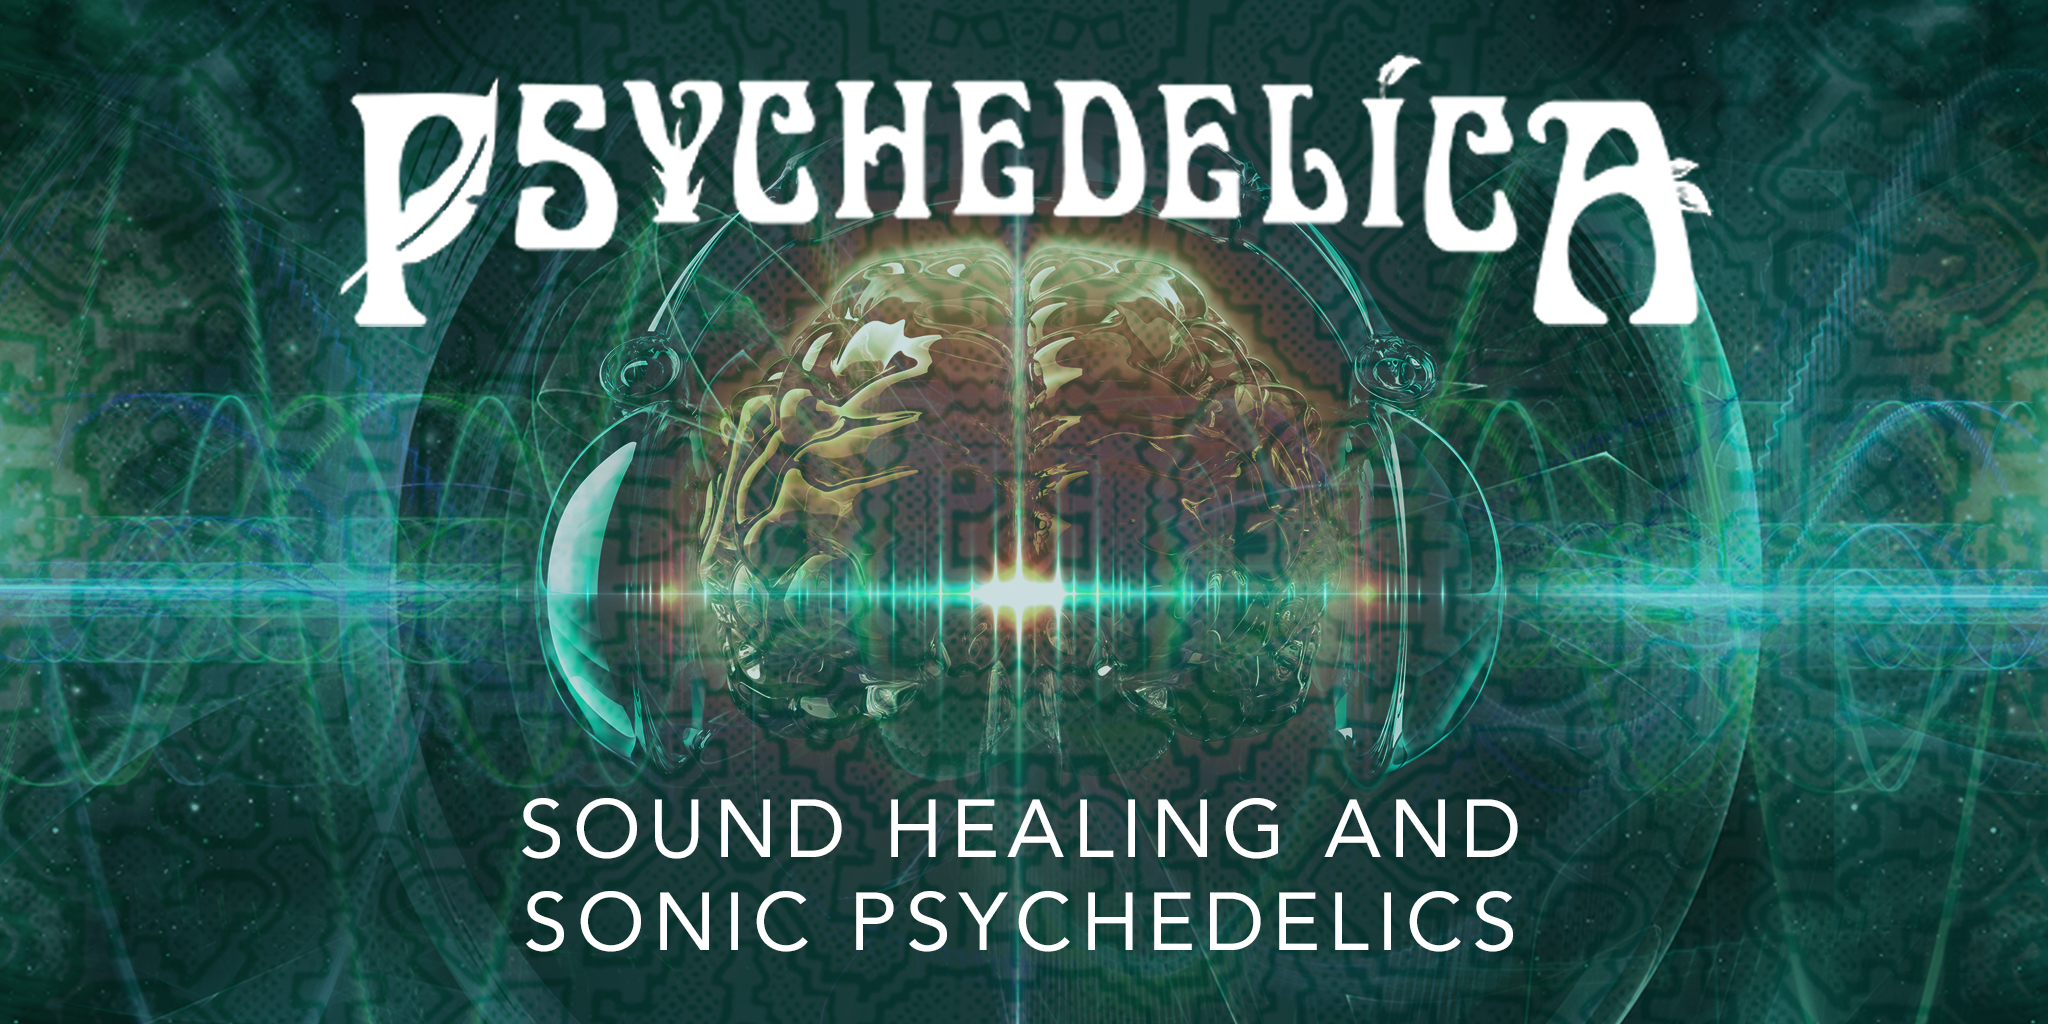 173761_p_e13_sound-healing-and-sonic-psychedelics_2048x1024.jpg